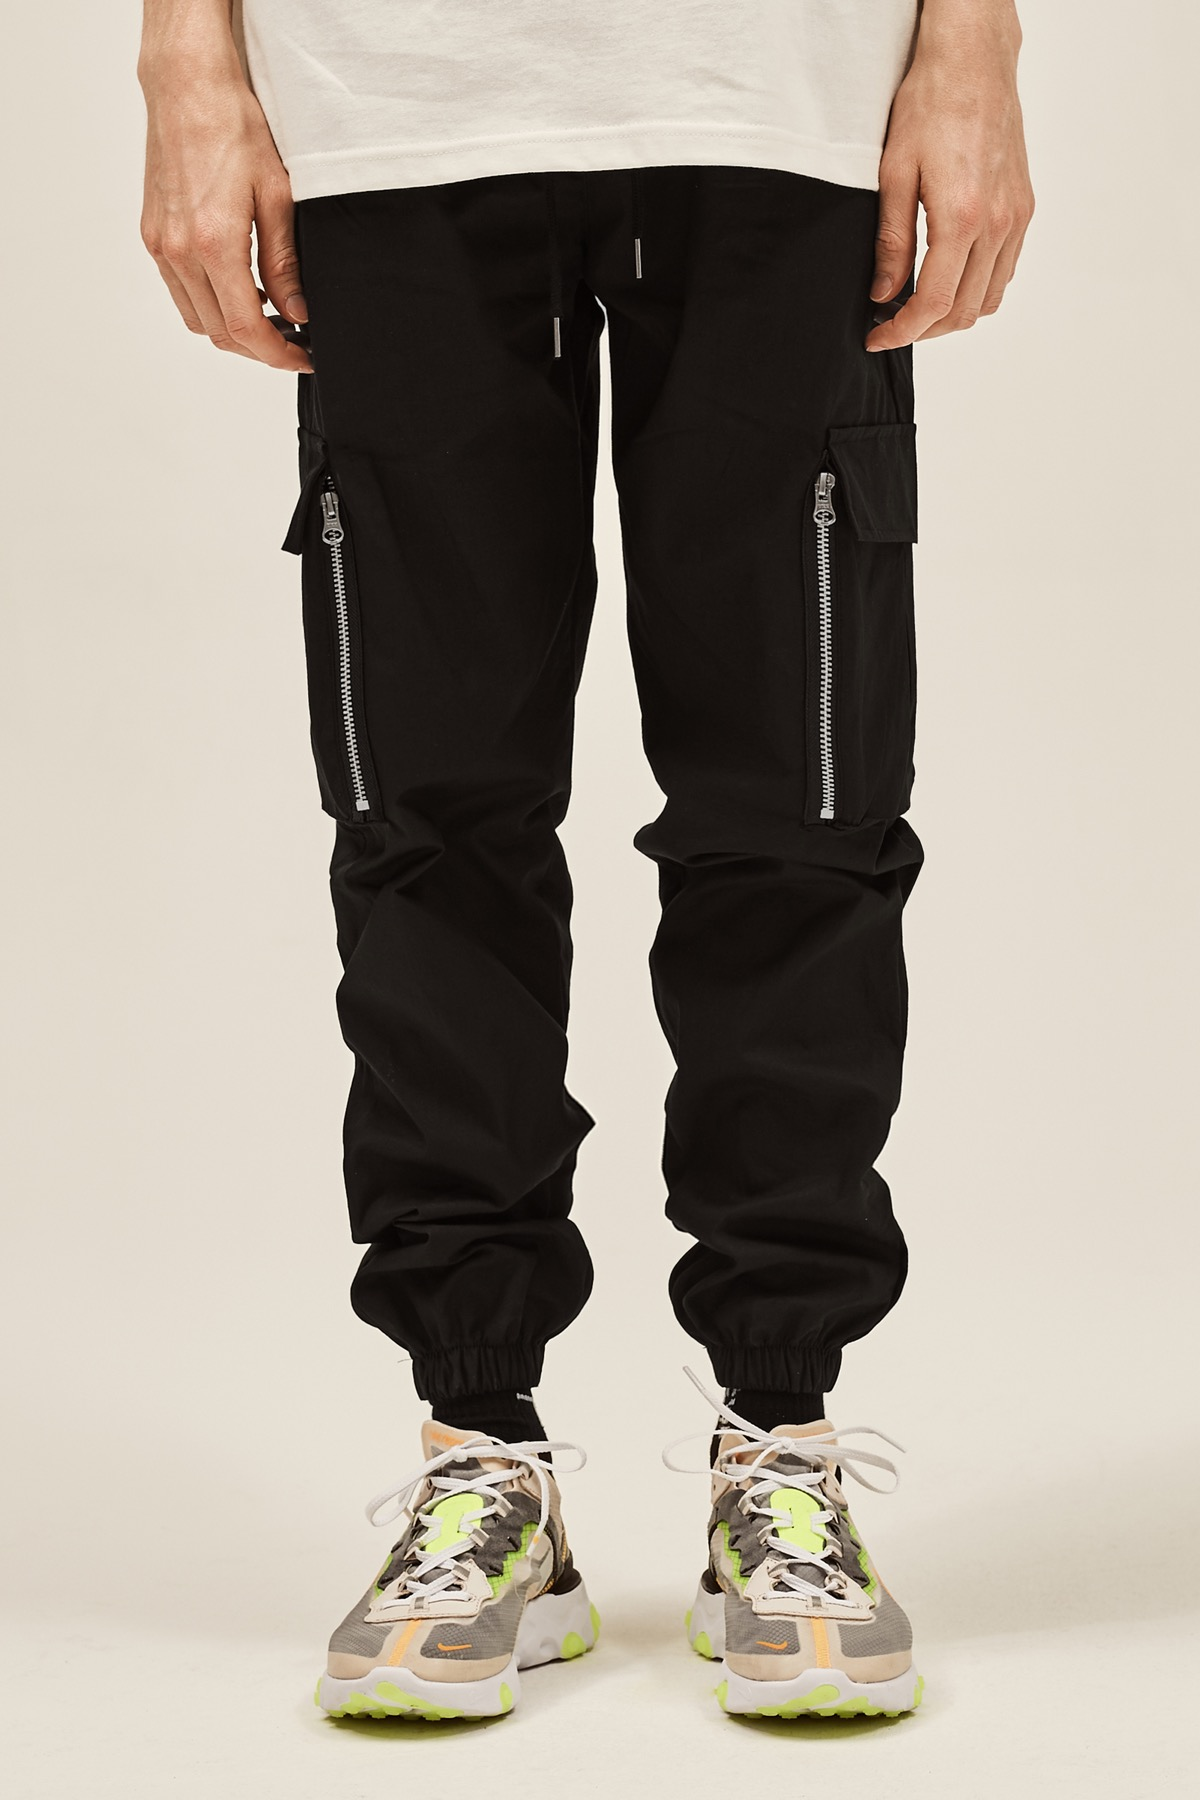 BLACK CARGO ZIPPER JOG PANTS V2